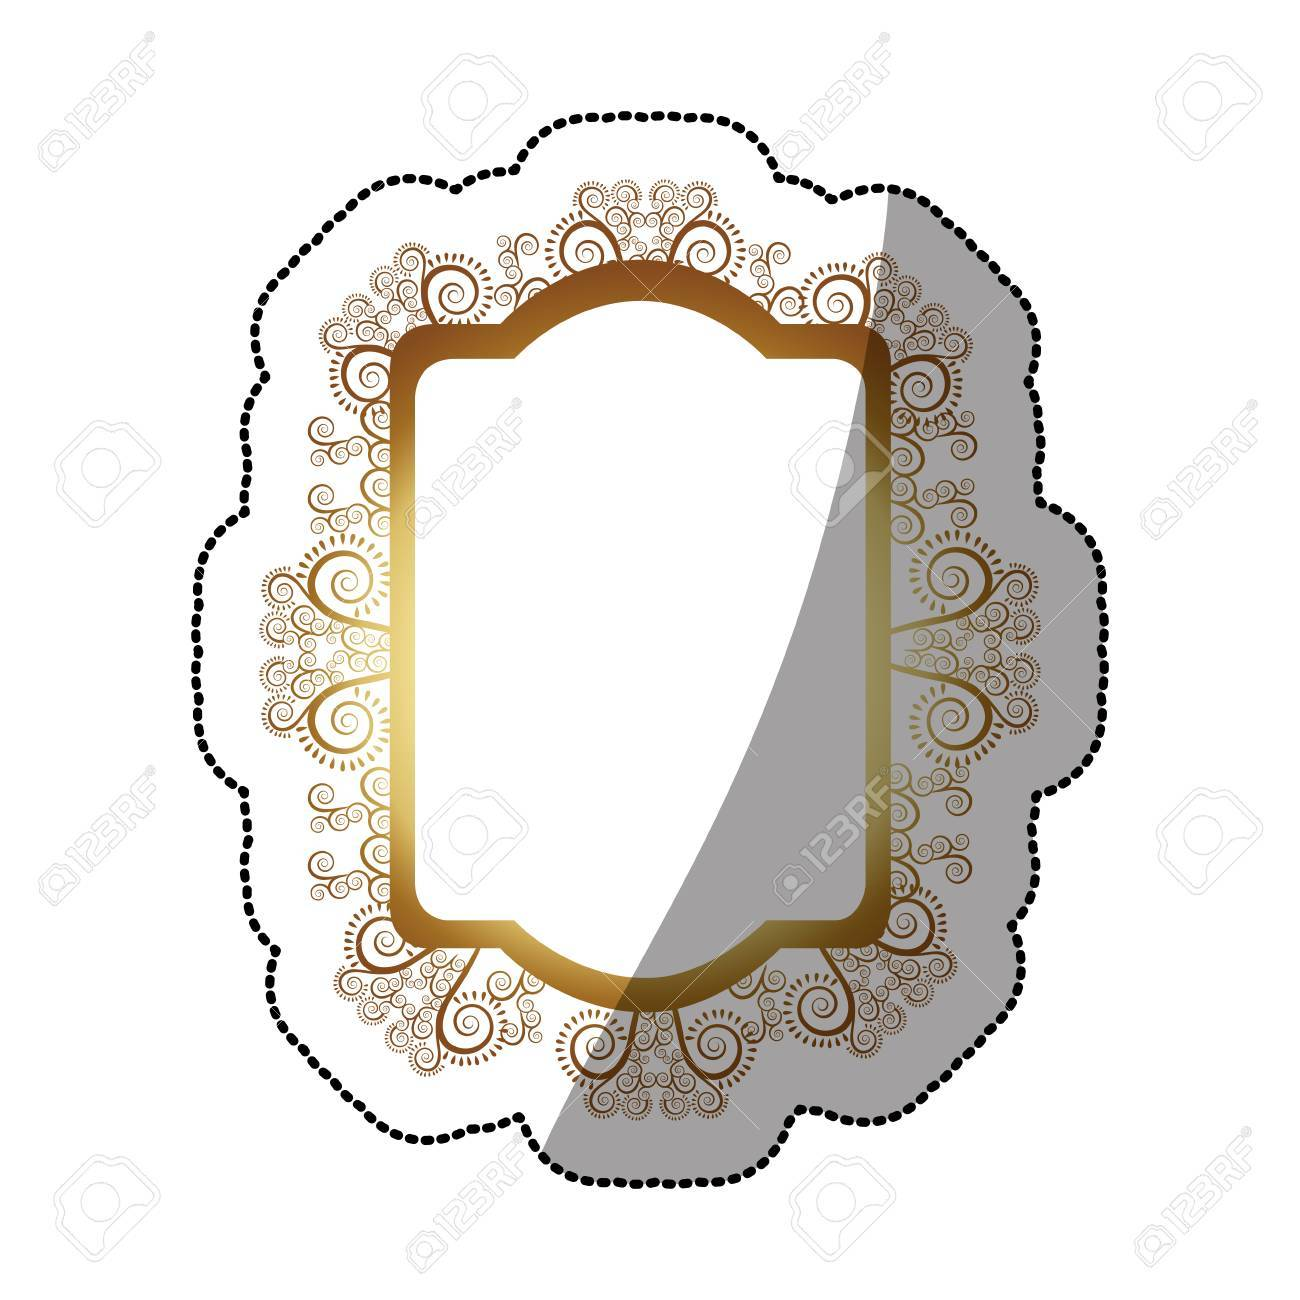 Sticker Golden Oval Rectangle Heraldic Baroque Frame Vector